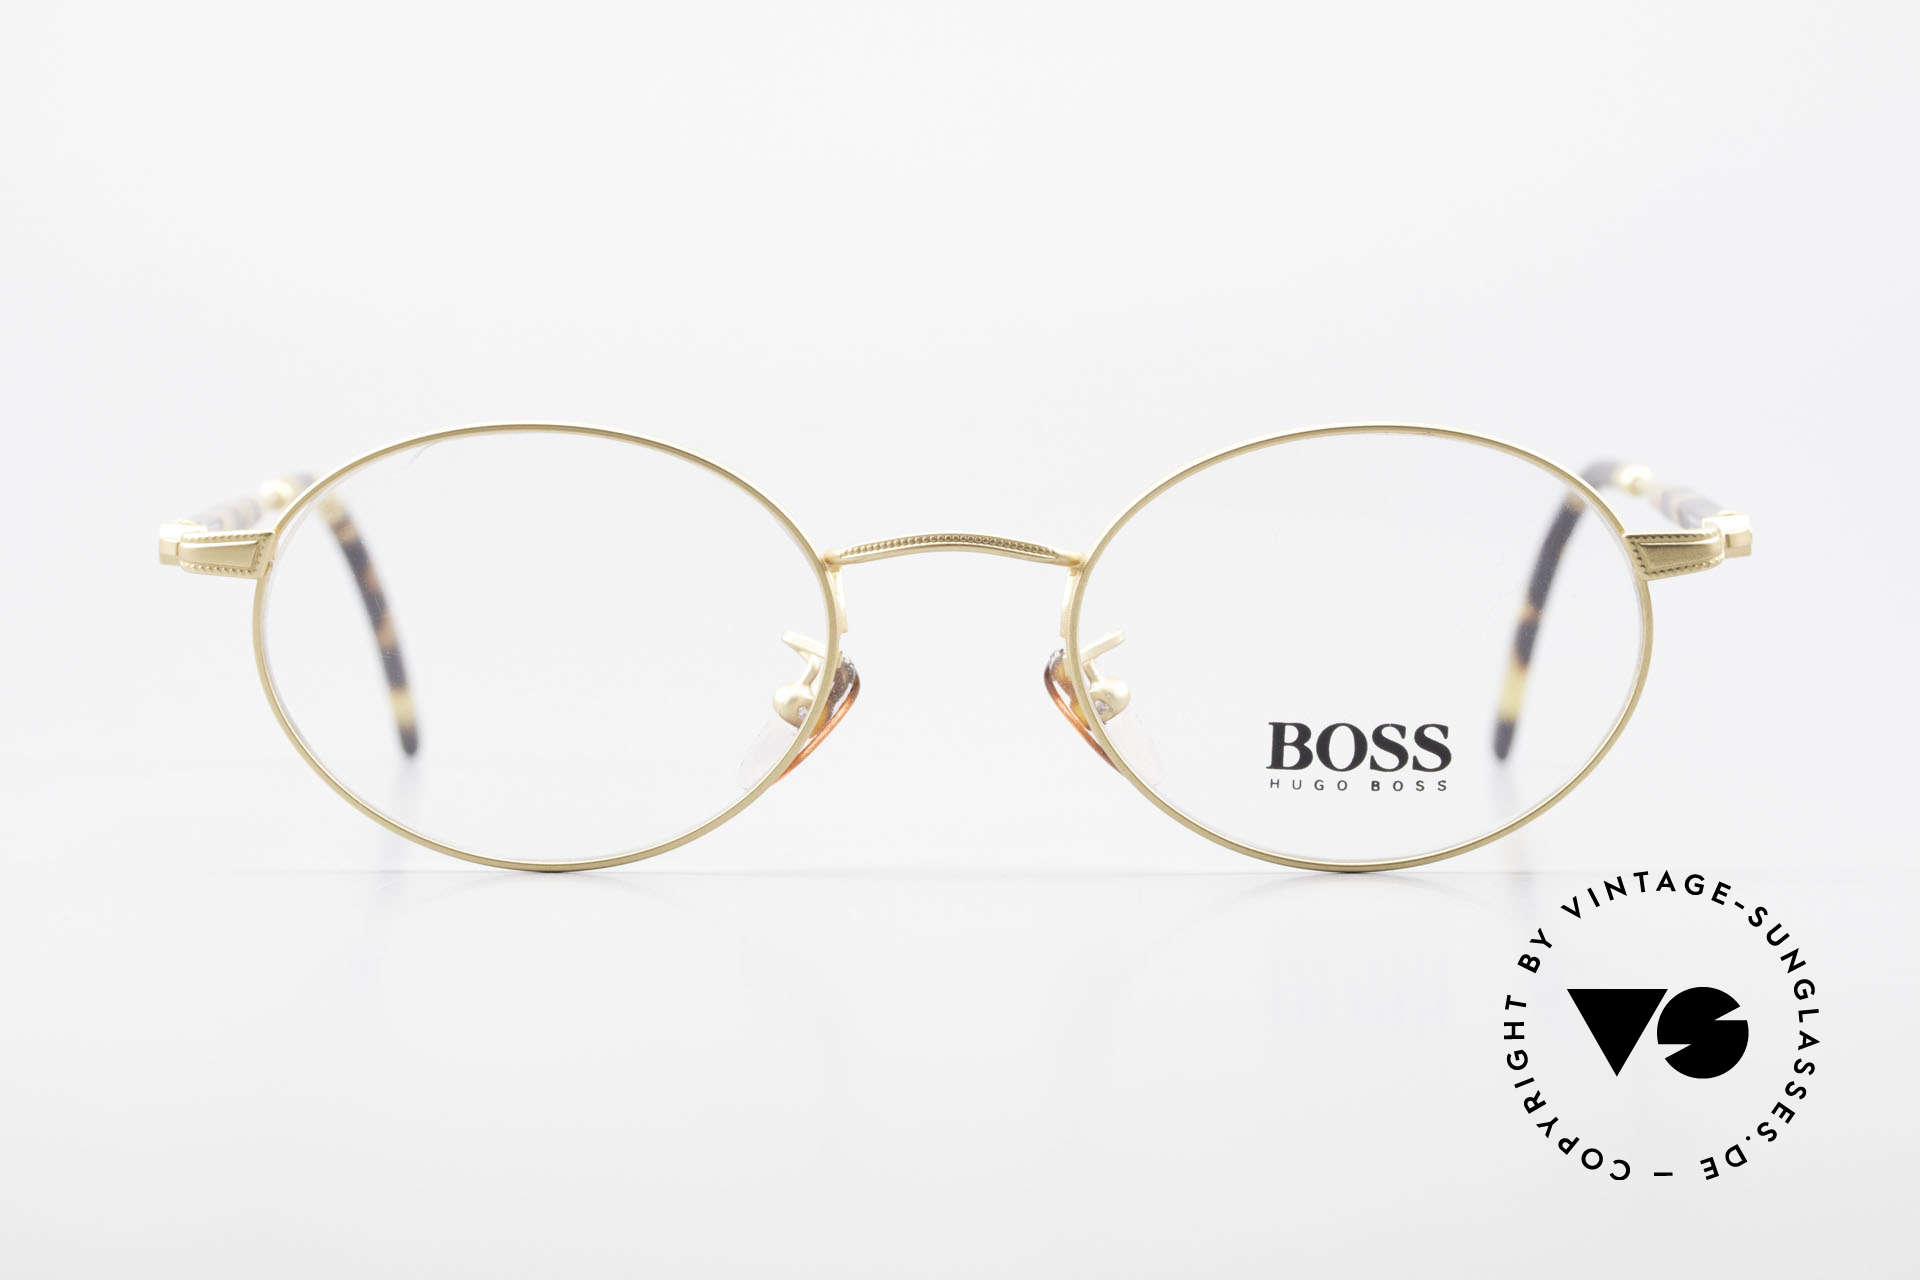 BOSS 5139 Oval Panto Eyeglass Frame, grand original in premium quality; just timeless!, Made for Men and Women